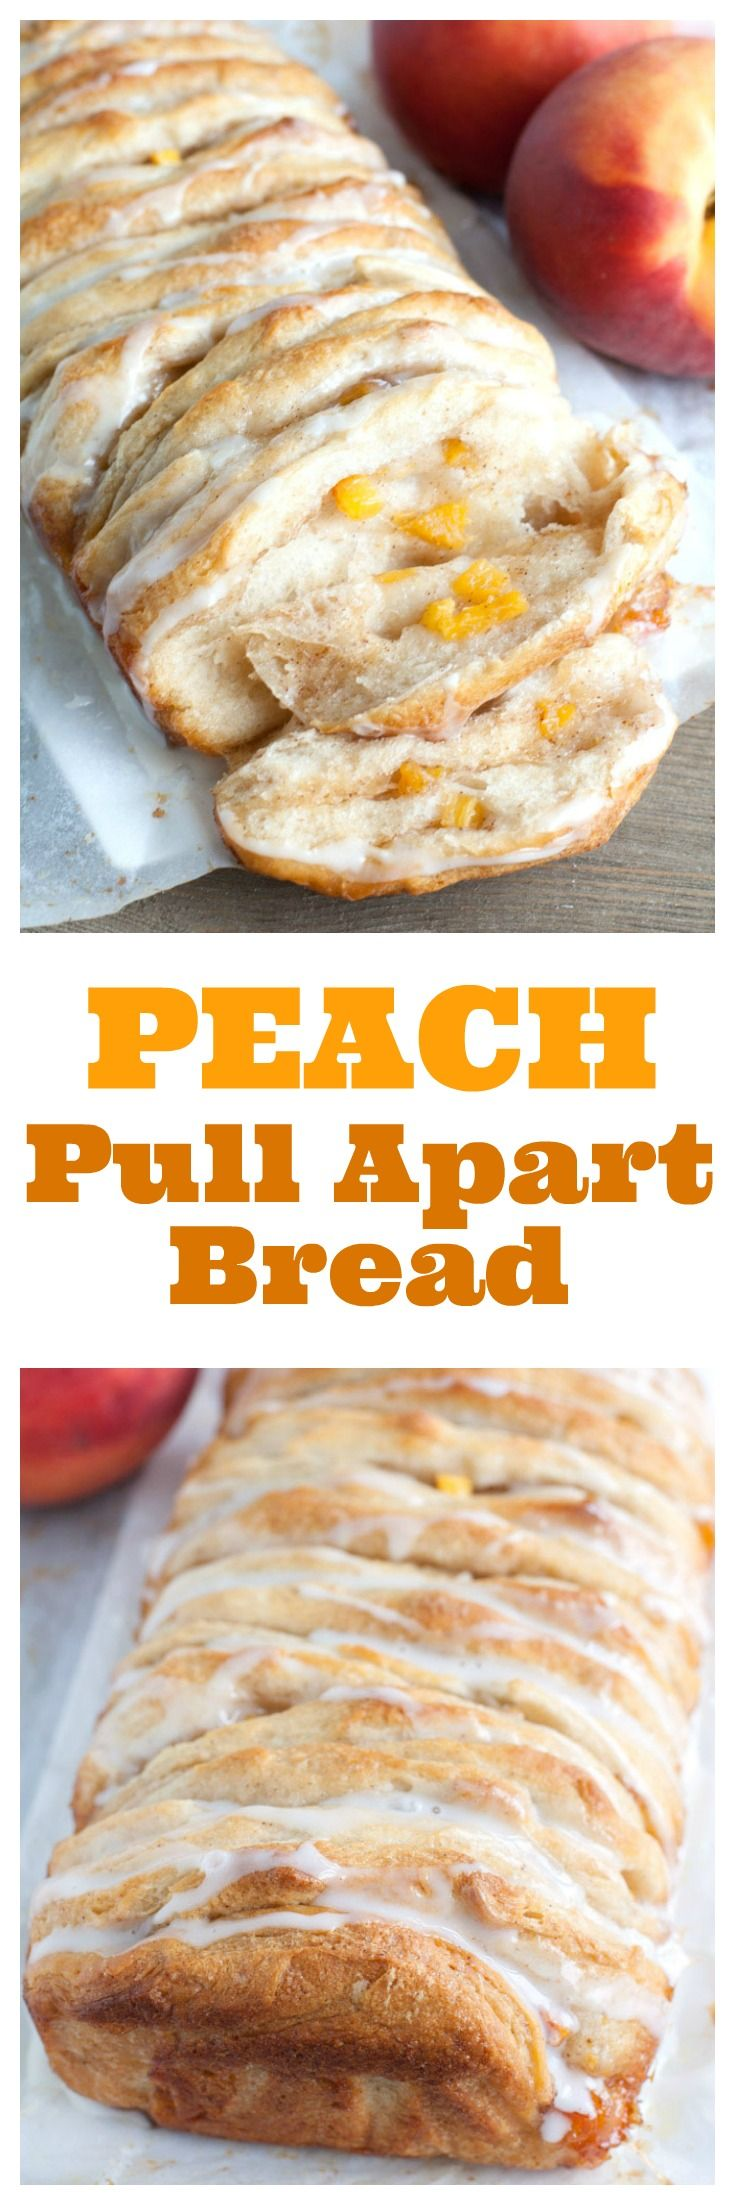 Peach Pull Apart Bread made with biscuits, brown sugar, cinnamon and fresh peaches.Perfect for breakfast or dessert.| pull apart bread| peach bread